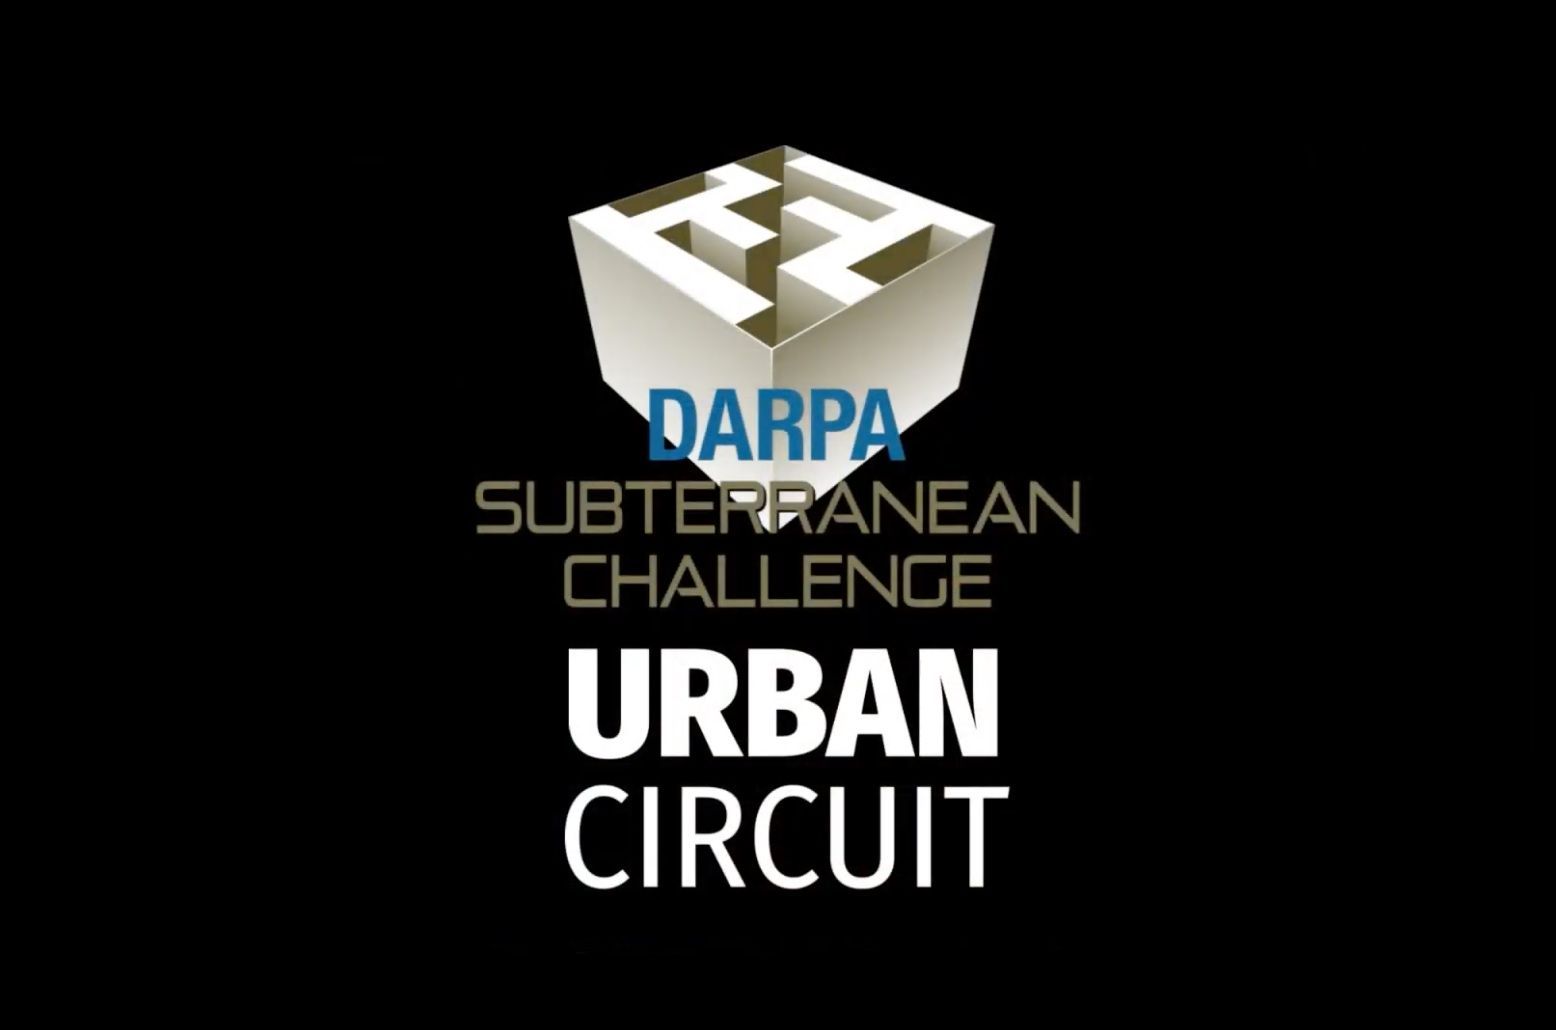 How to Watch the DARPA SubT Urban Circuit Competition Live